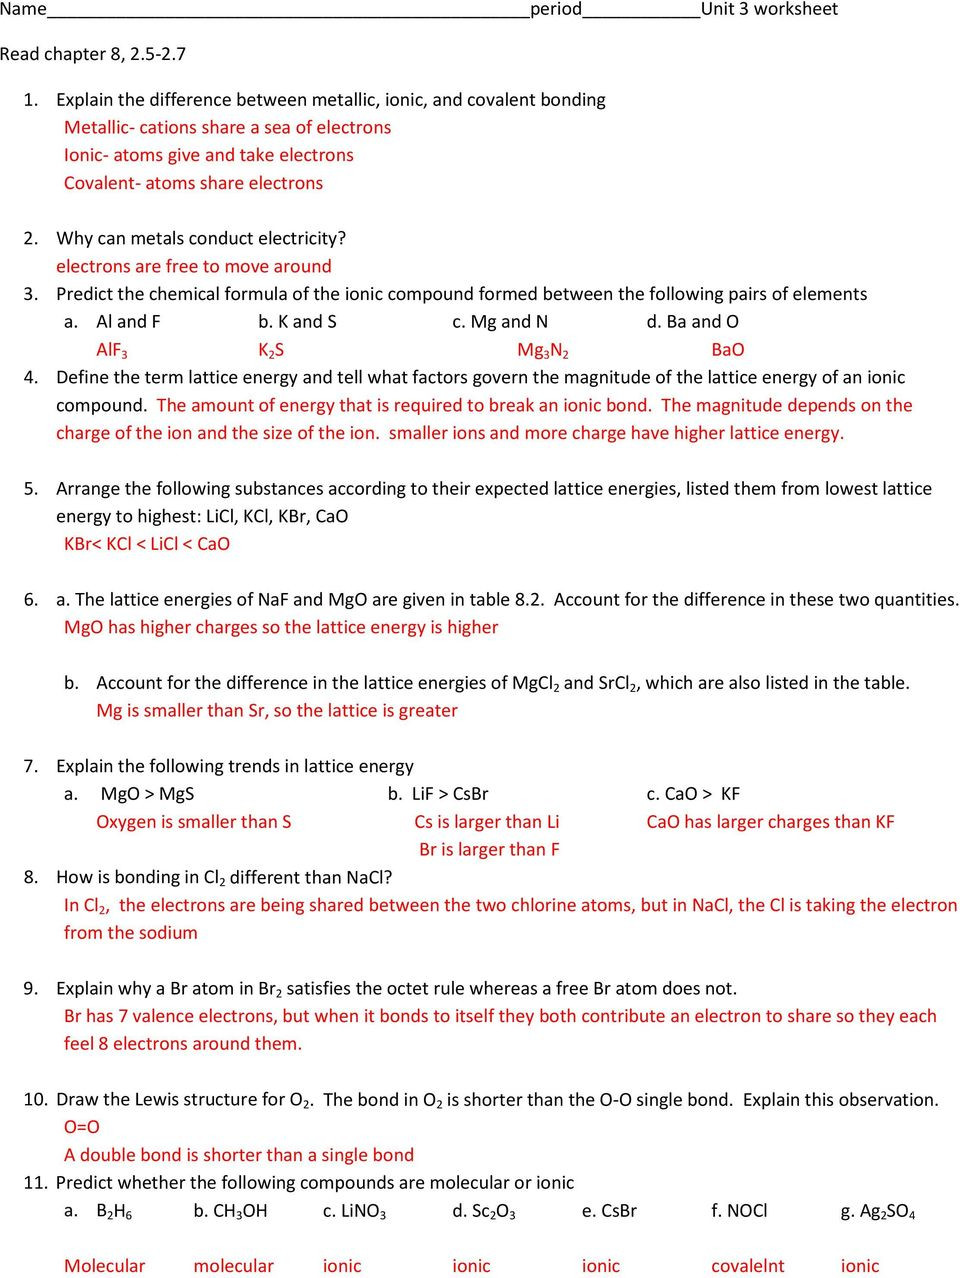 Ionic and Covalent Bonding Worksheet Name Period Unit 3 Worksheet Pdf Free Download